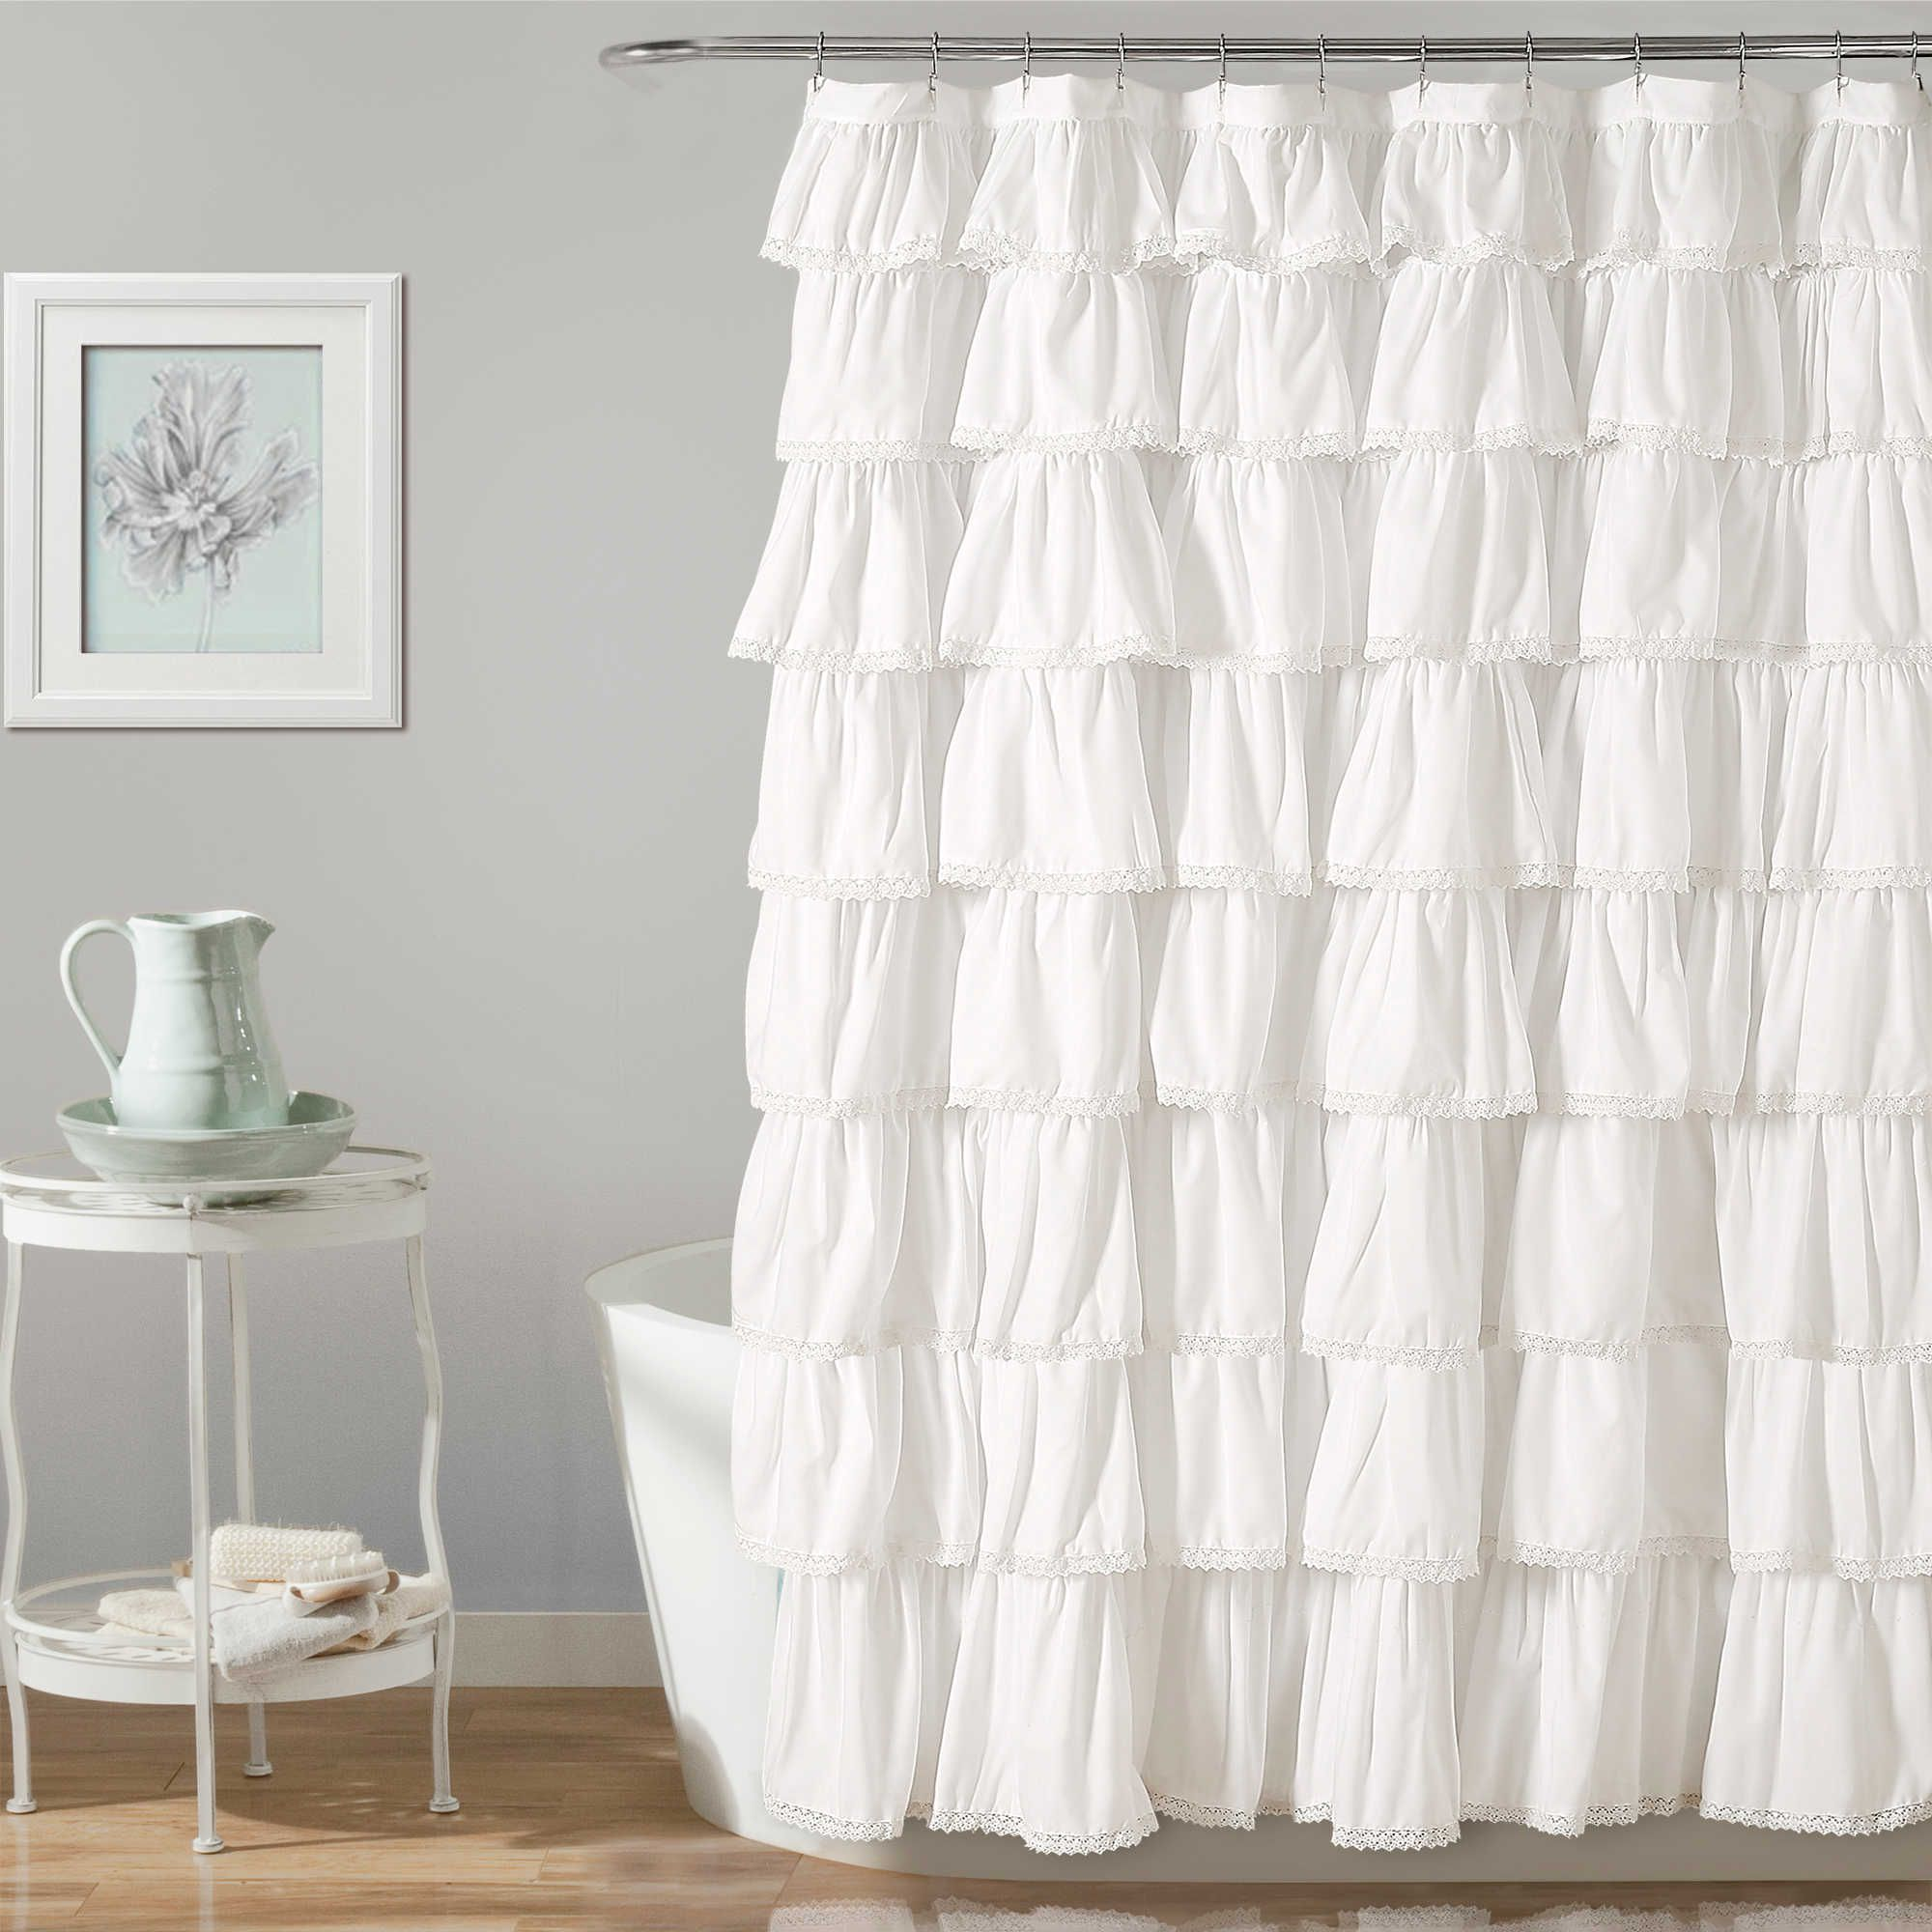 Lush Decor Emily Shower Curtain In White Ruffle Shower Curtains